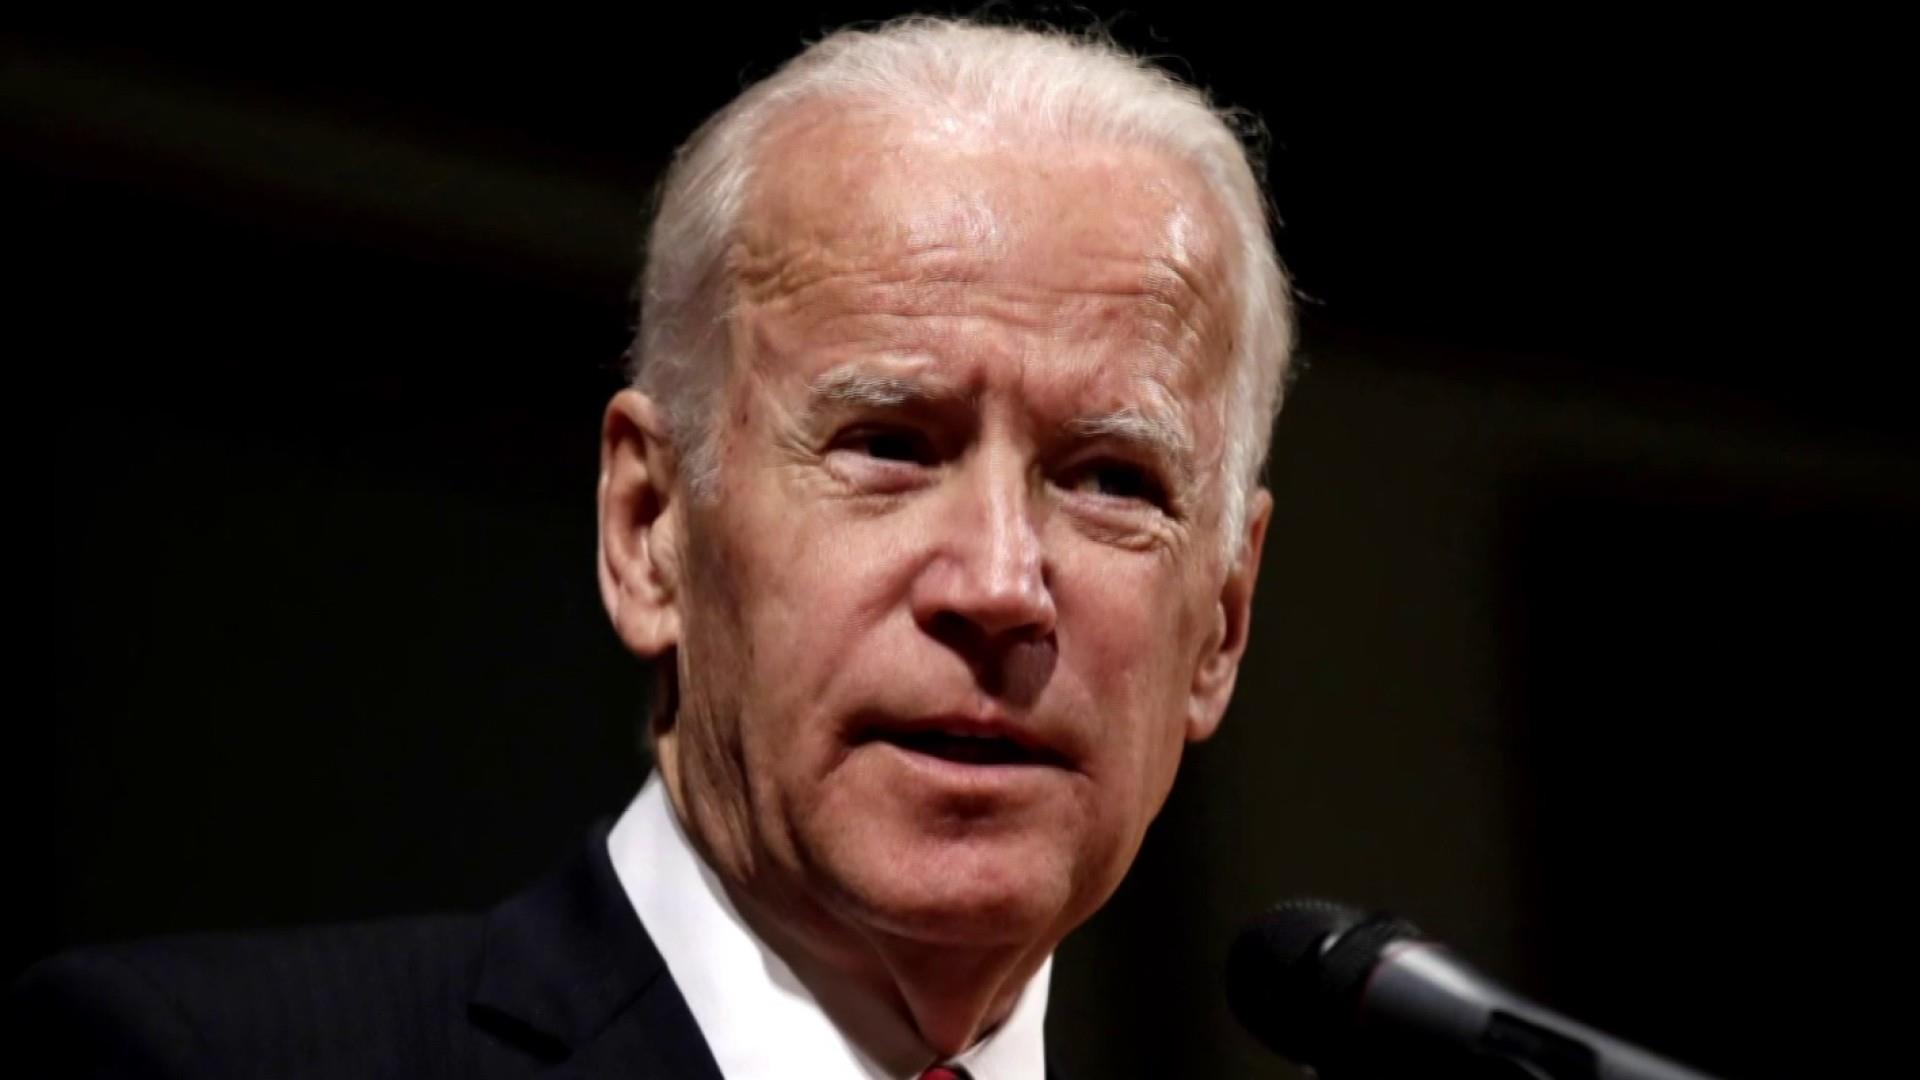 Biden jumps ahead of primary, says he'll take Trump states in the general